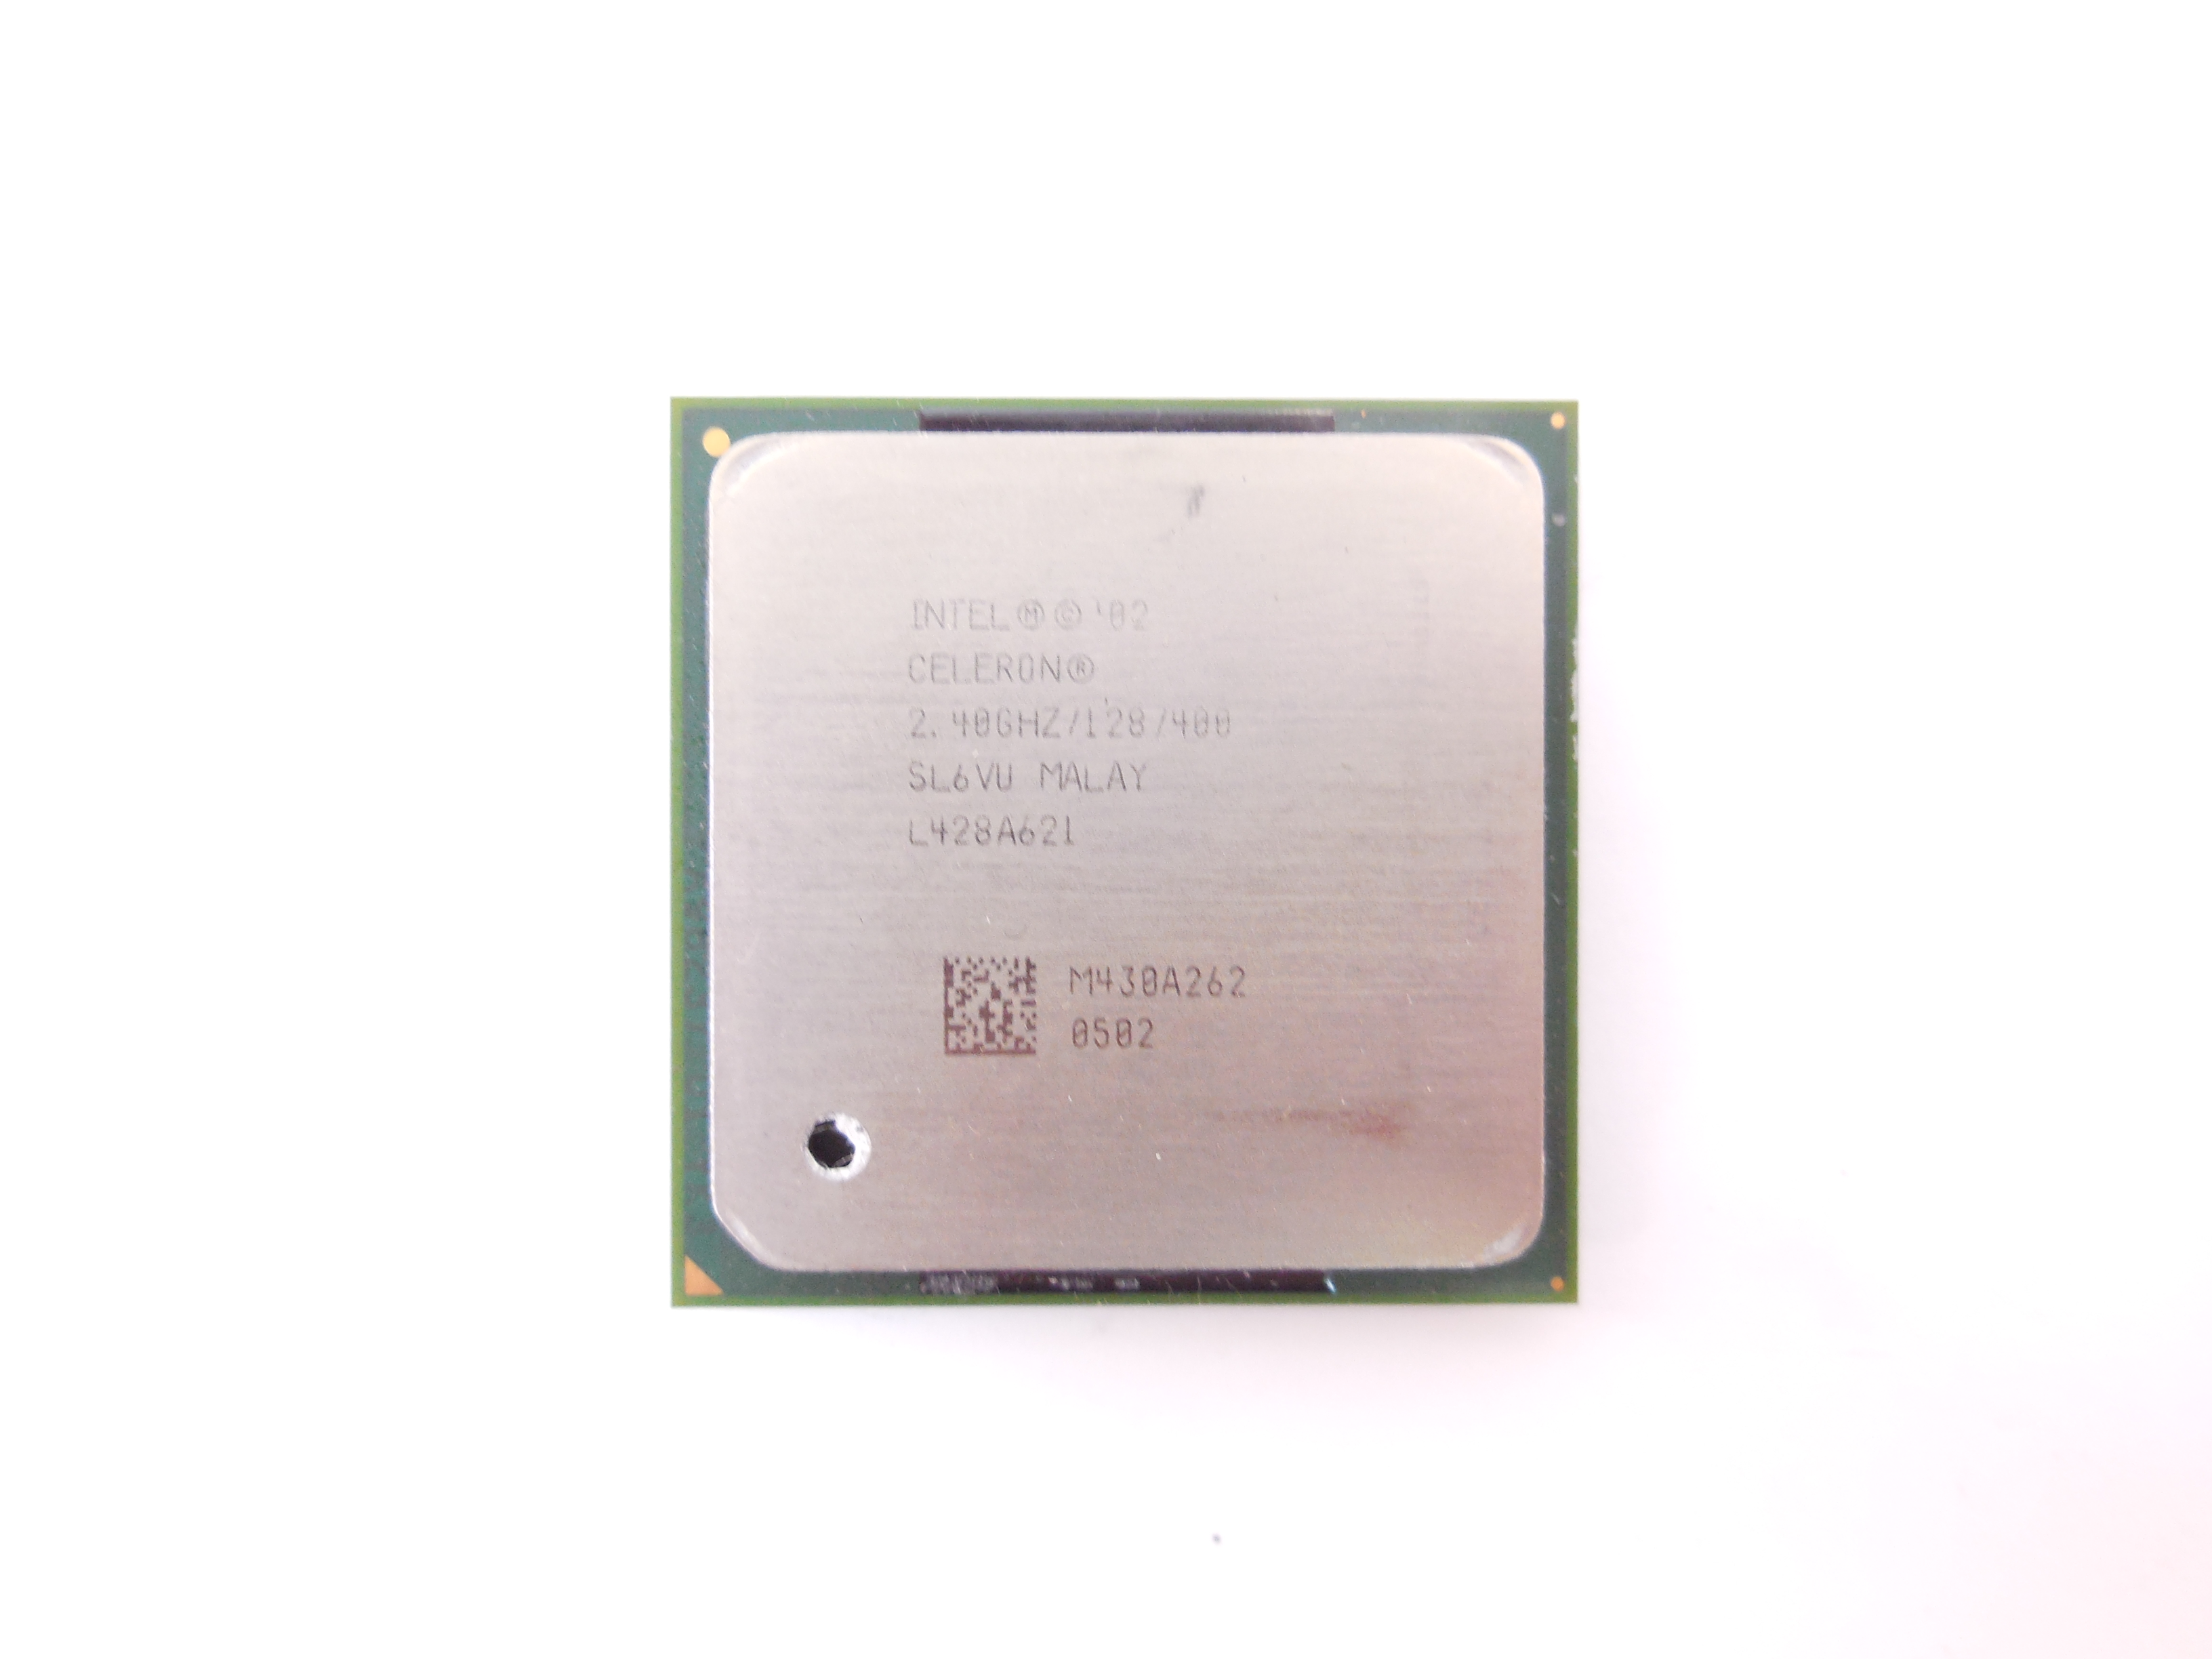 Процессор Socket 478 Intel Celeron 2.2GHz  - Pic n 97308